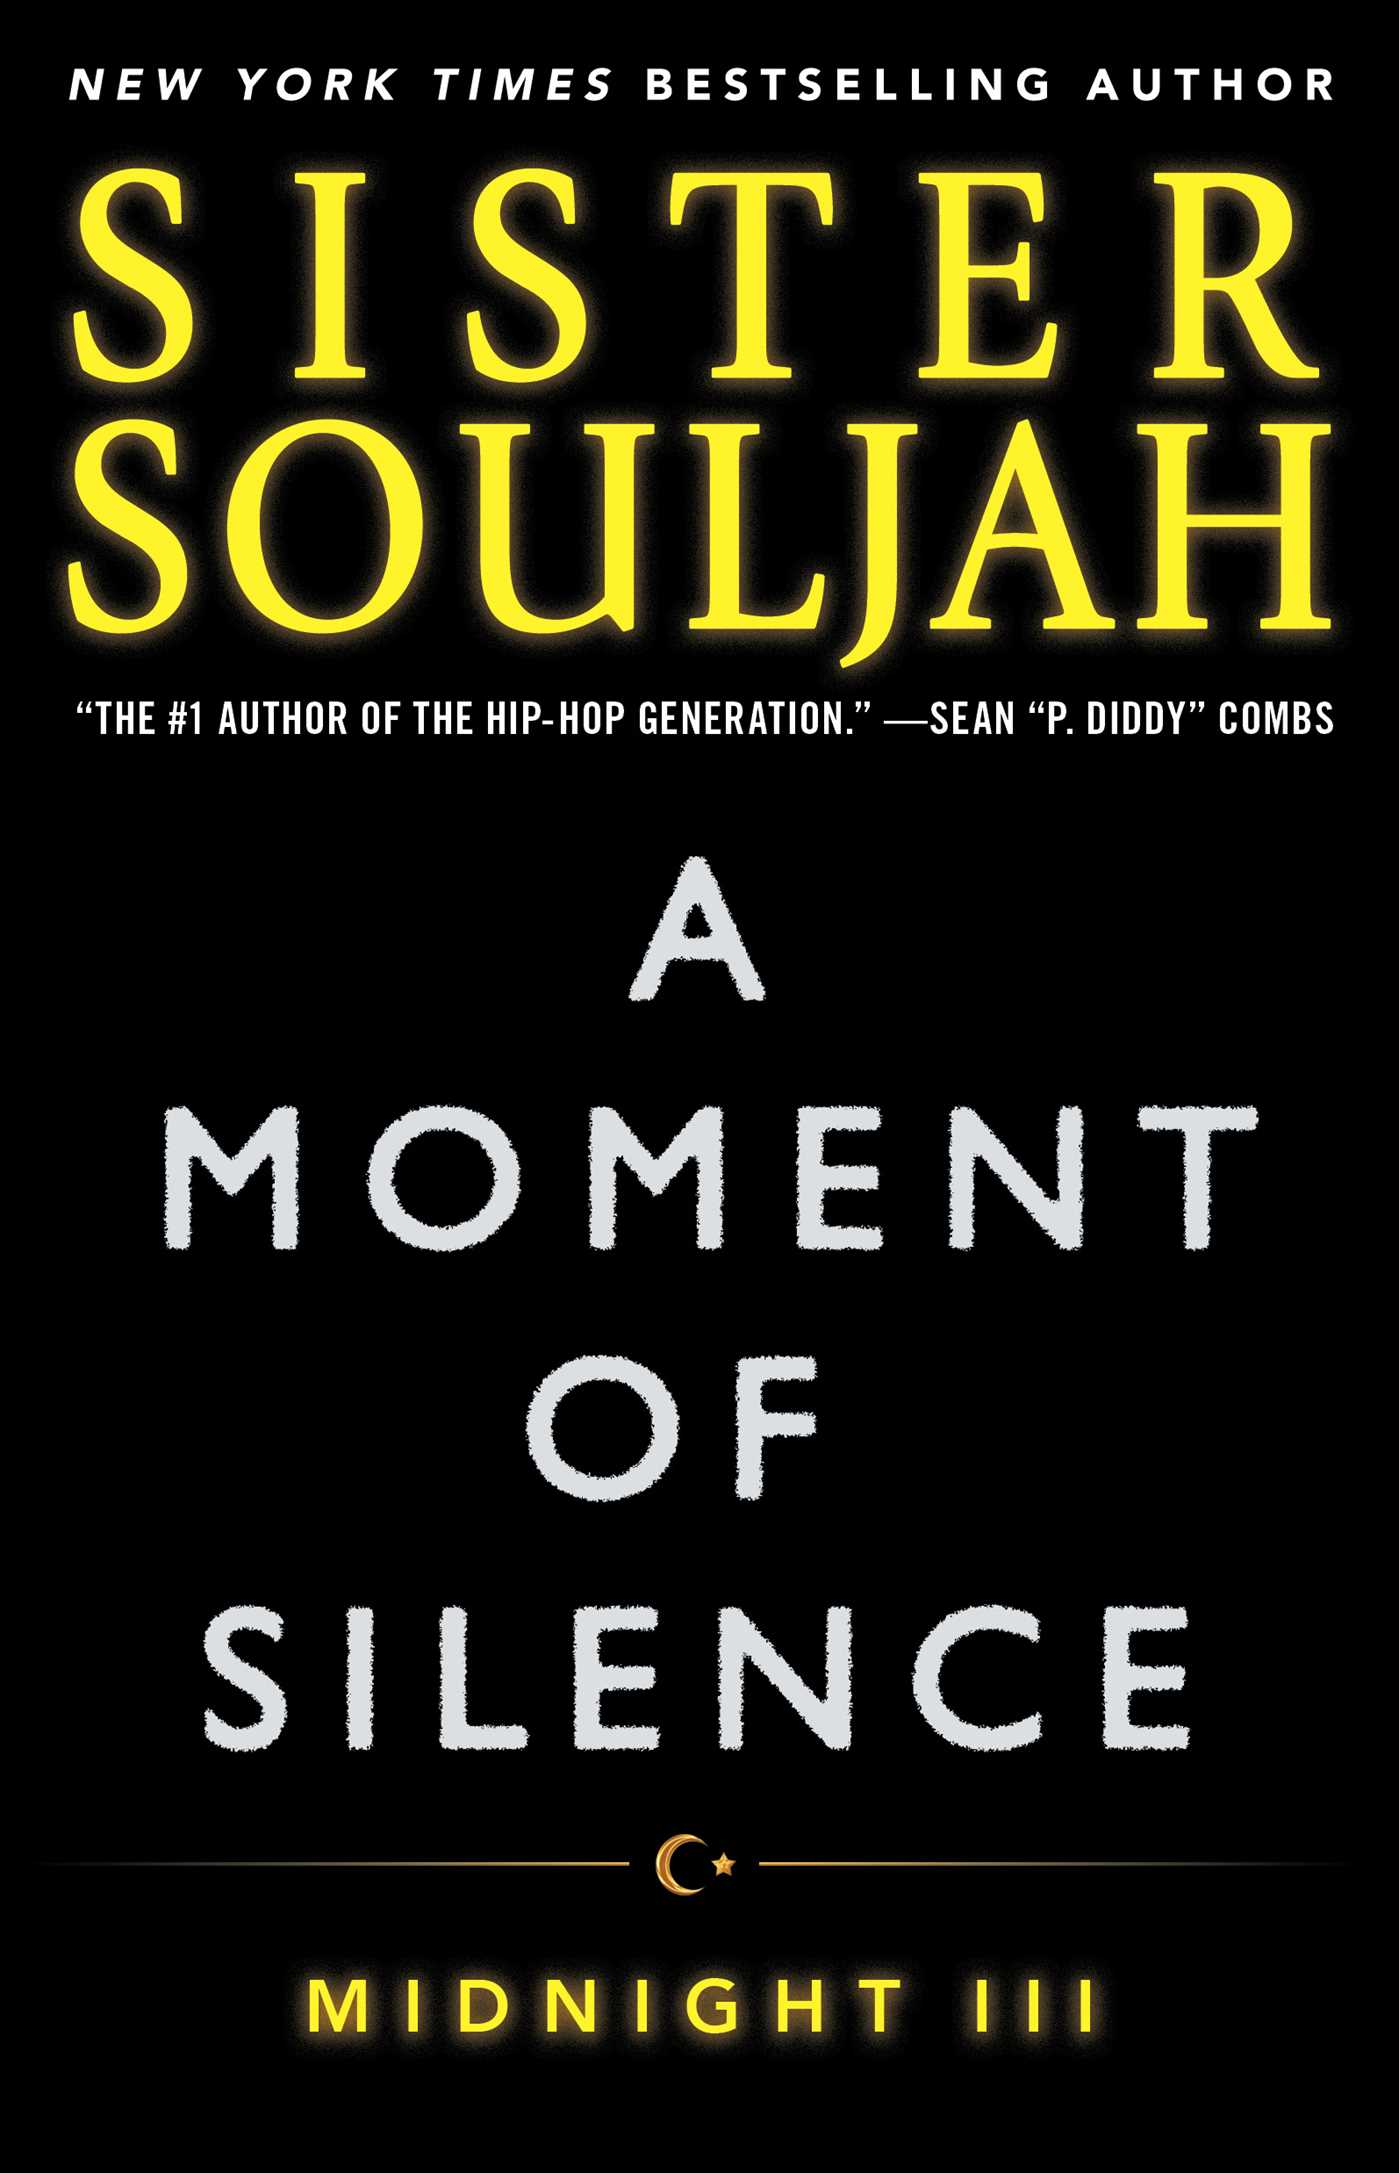 A Moment of Silence | Book by Sister Souljah